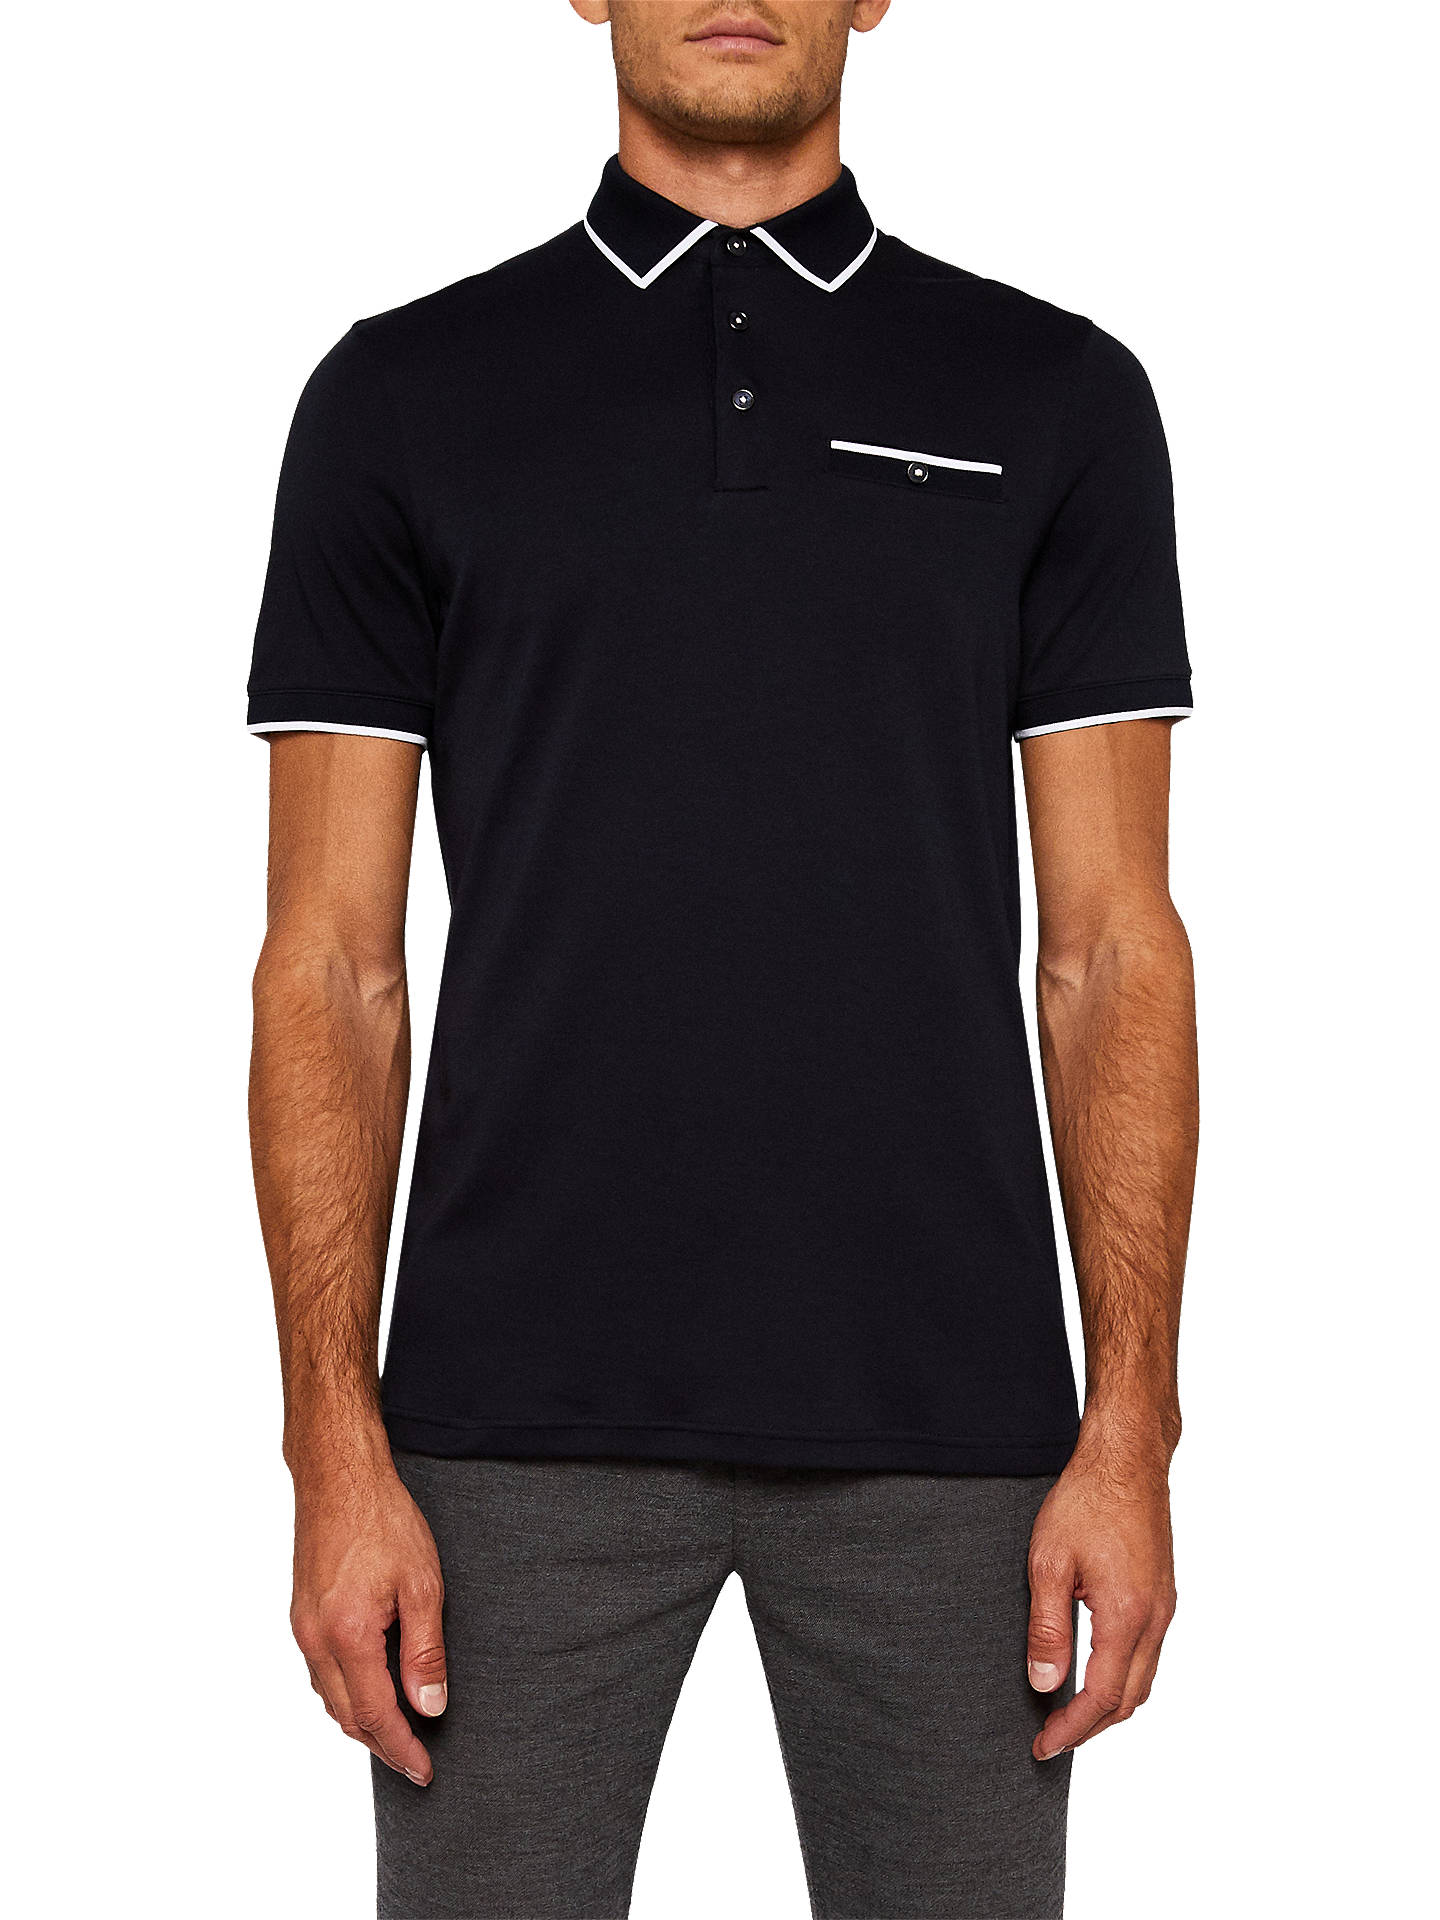 885a4178f Ted Baker Jelly Short Sleeve Polo Shirt at John Lewis   Partners